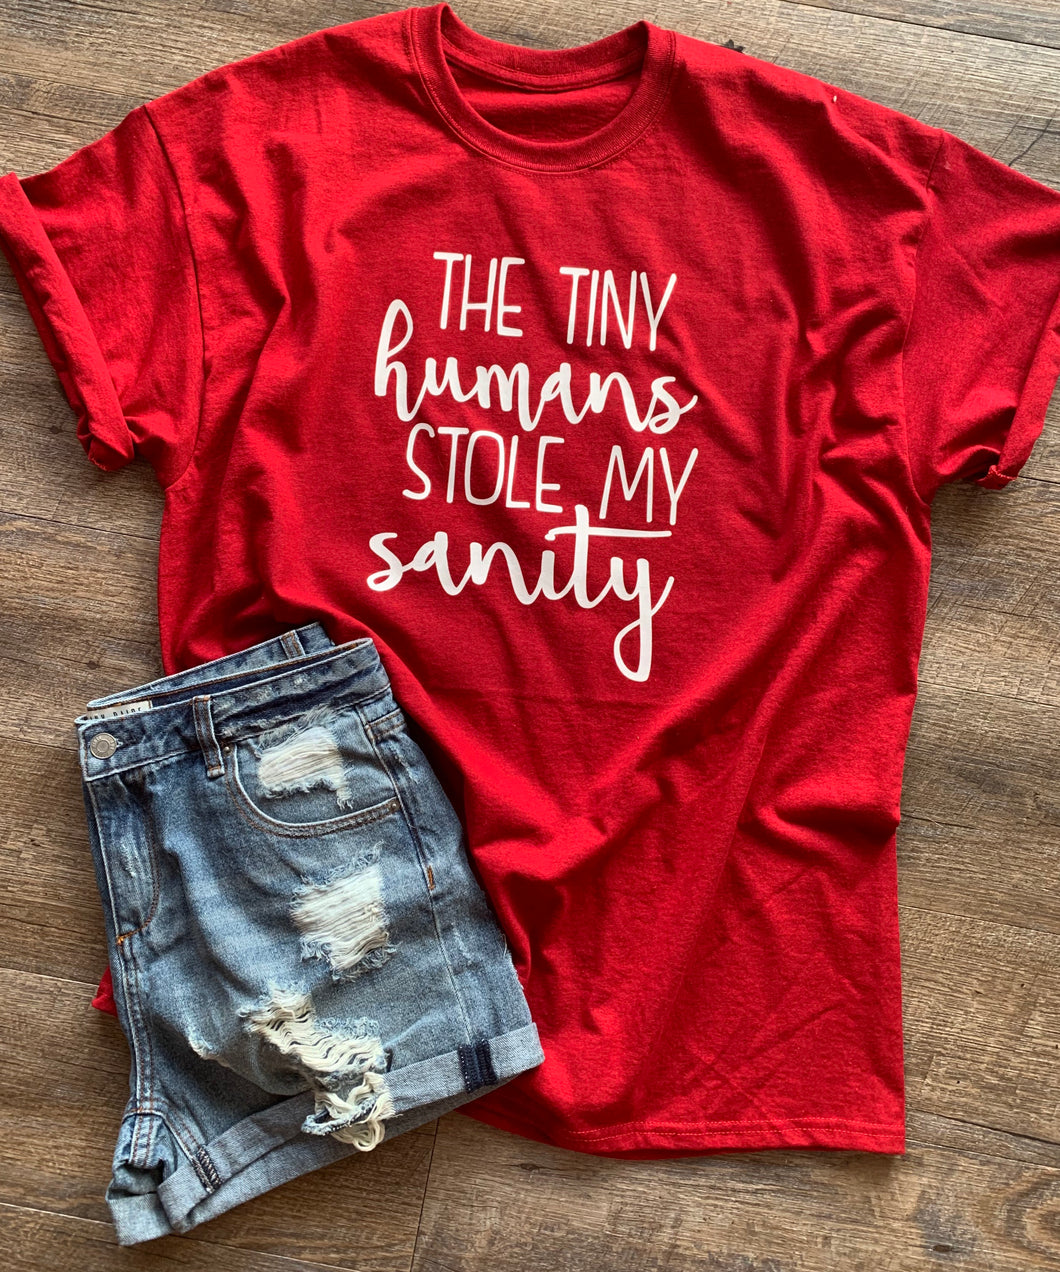 The tiny humans stole my sanity graphic tee - Mavictoria Designs Hot Press Express